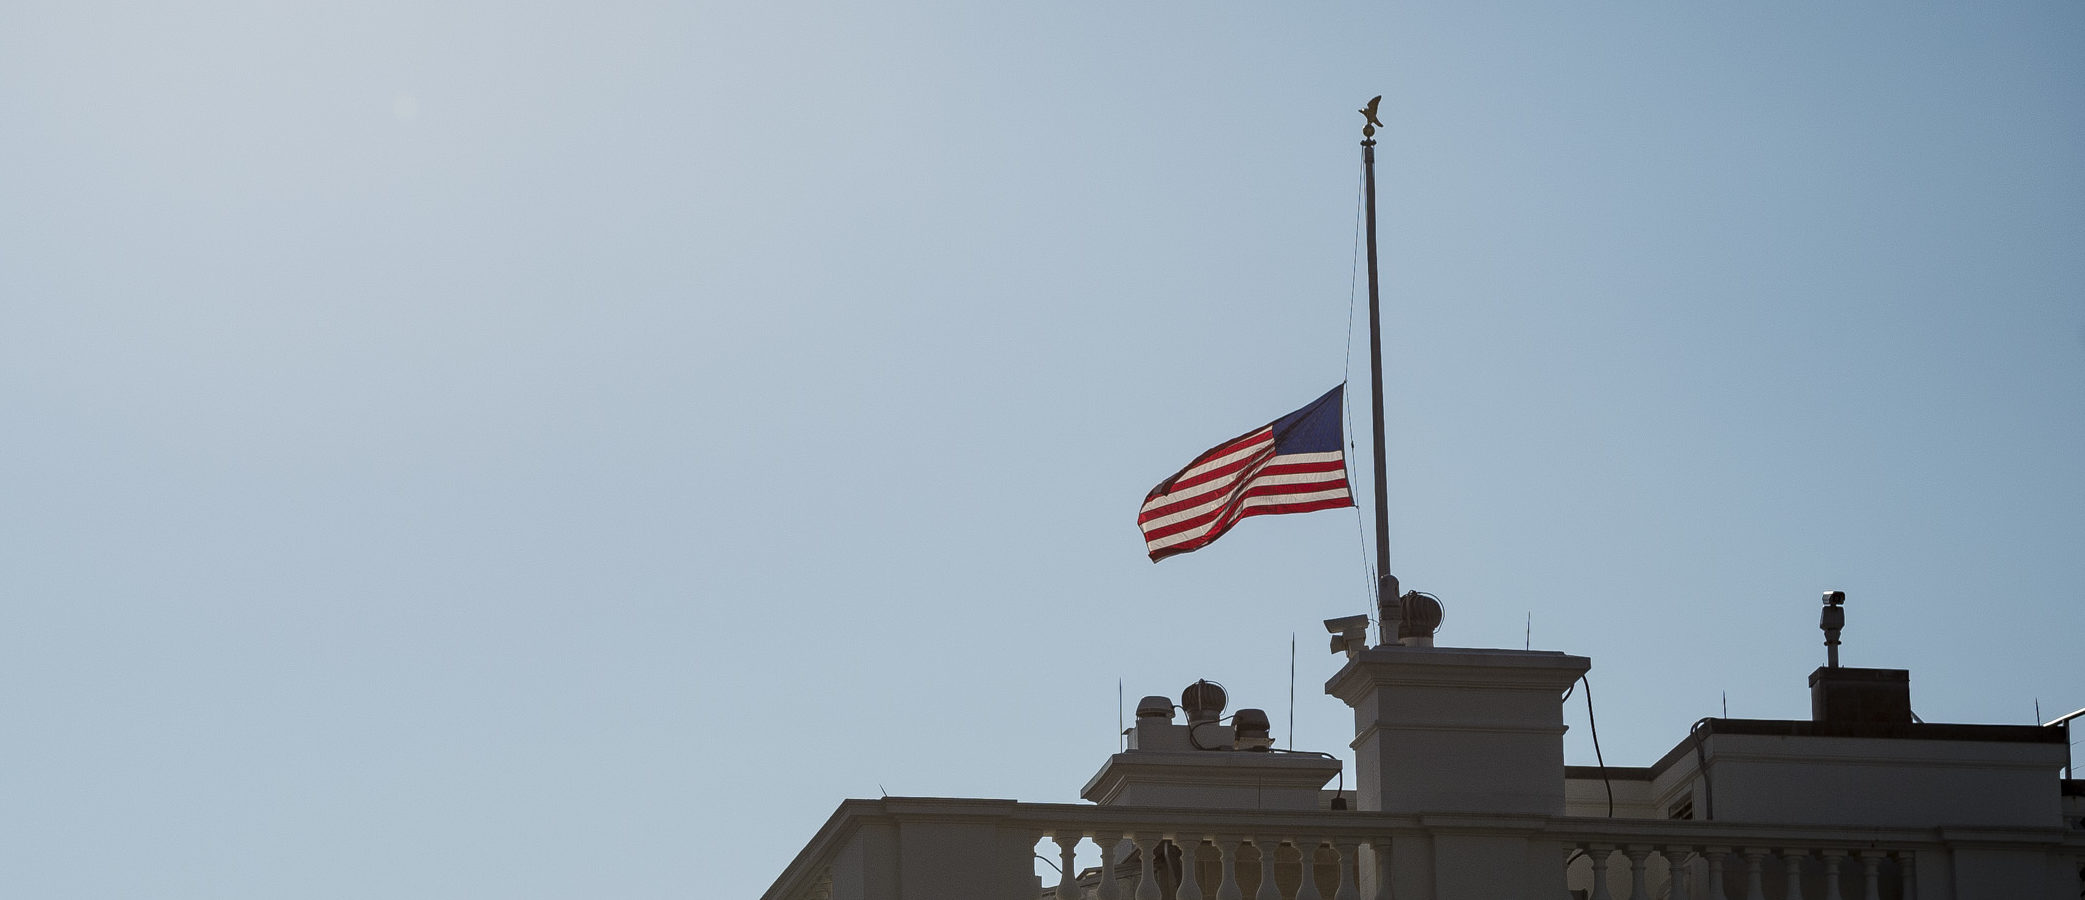 WASHINGTON, DC - AUGUST 26: The American flag flies at half staff over the White House honoring Senator John McCain on August 26, 2018 in Washington, D.C. Senator McCain was diagnosed with brain cancer in 2017 and passed away on August 25, 2018. (Photo by Pete Marovich-Pool/Getty Images)